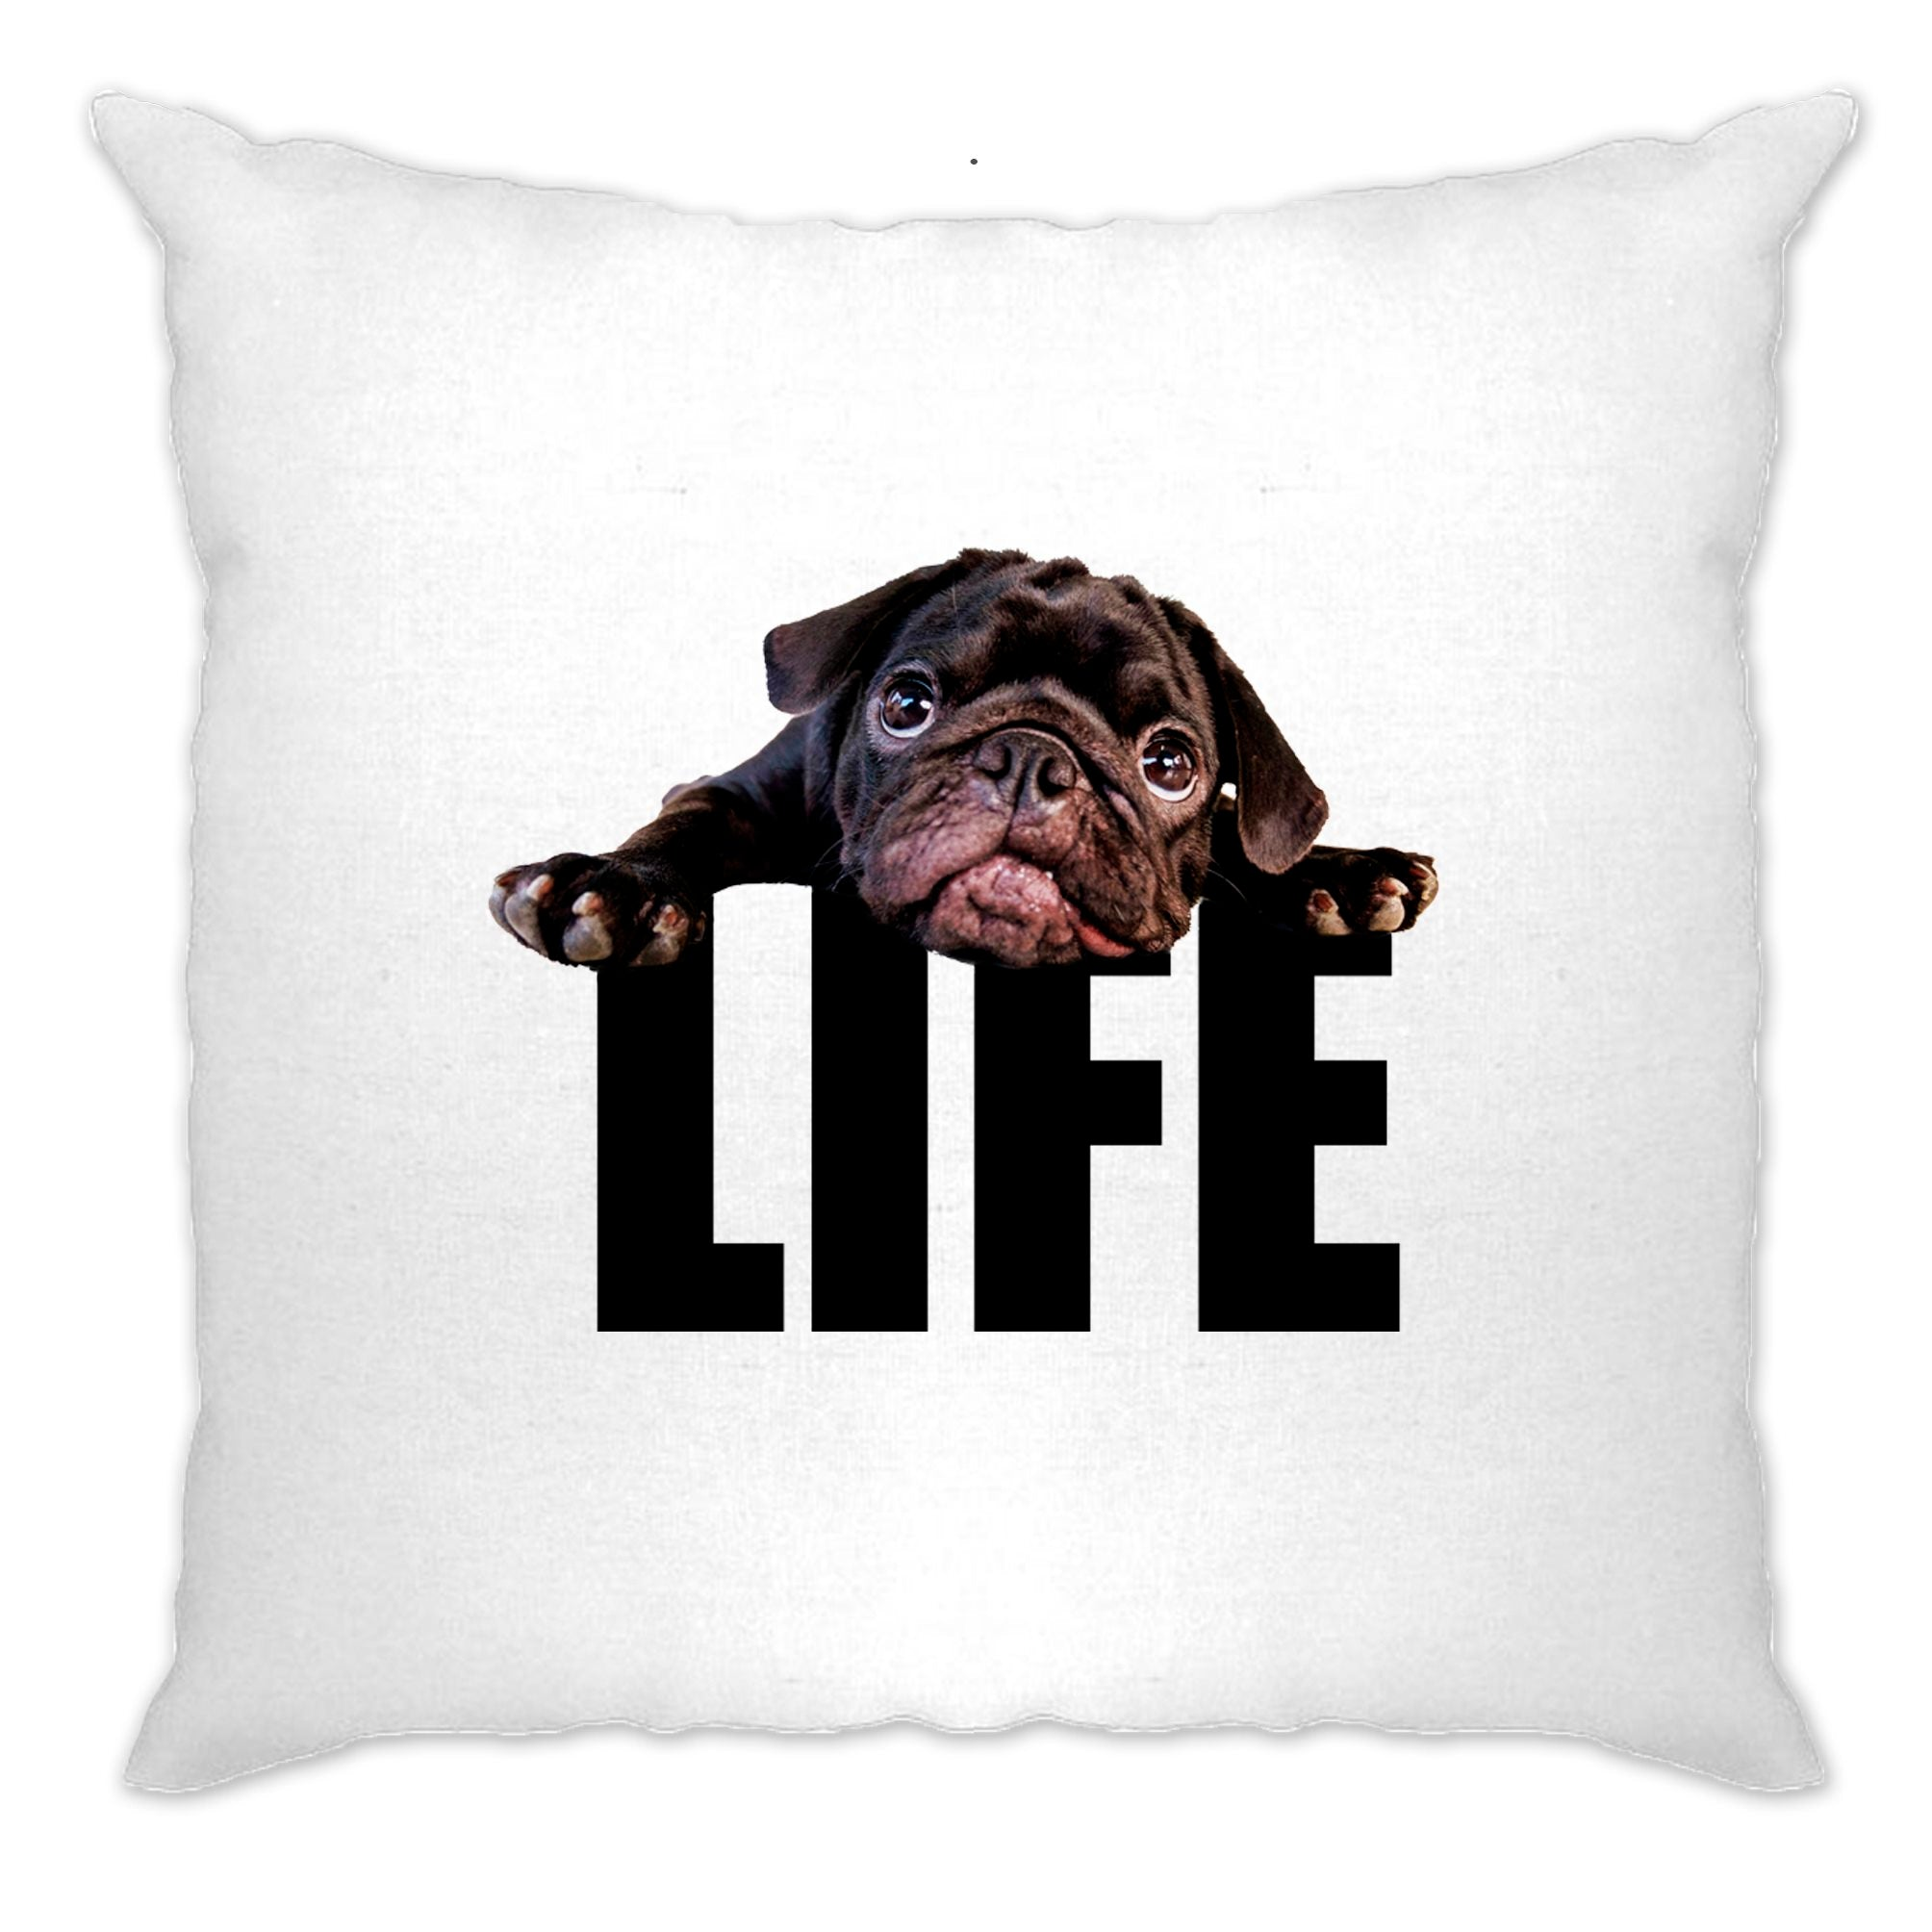 Cute Dog Cushion Cover Pug Life Puppy